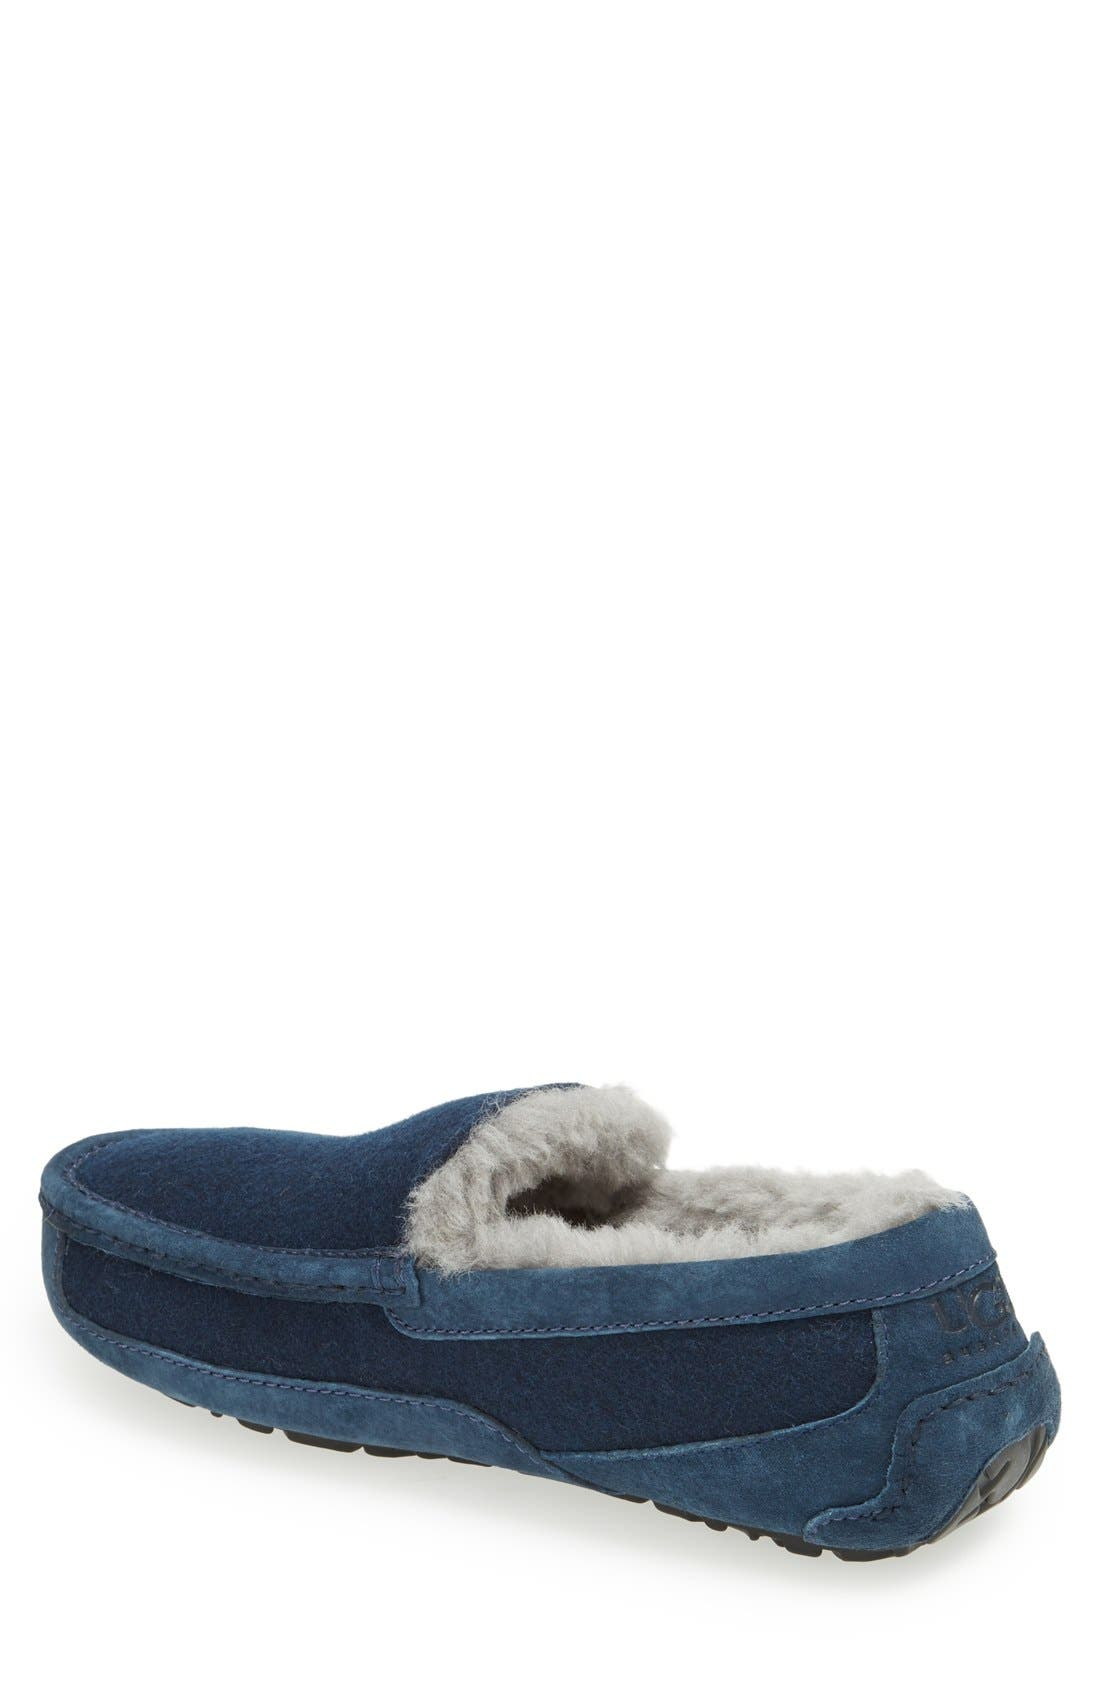 Alternate Image 2  - UGG® Australia 'Ascot' Wool Slipper